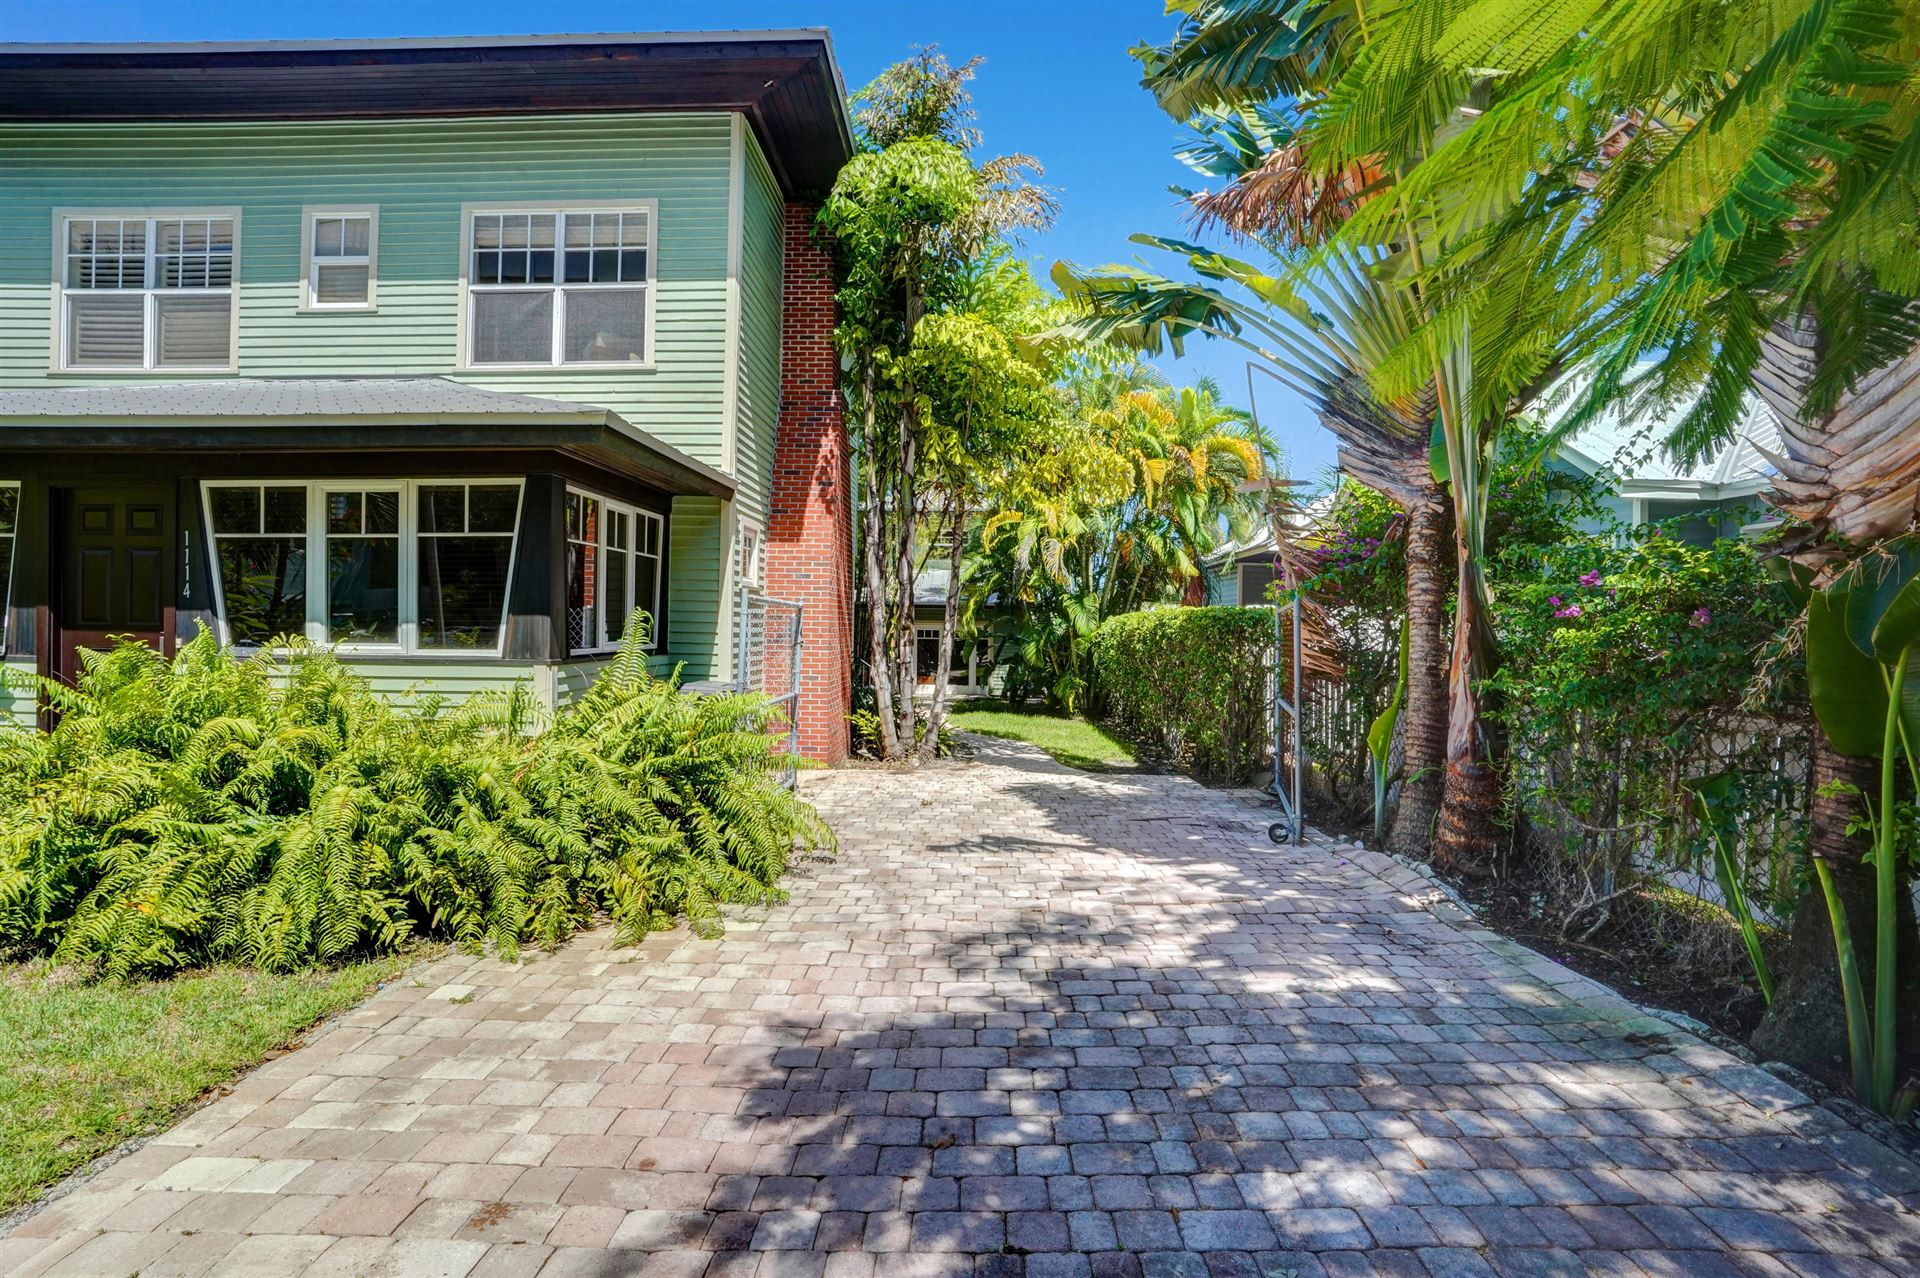 1114 Florida, West Palm Beach, 33401 Photo 1